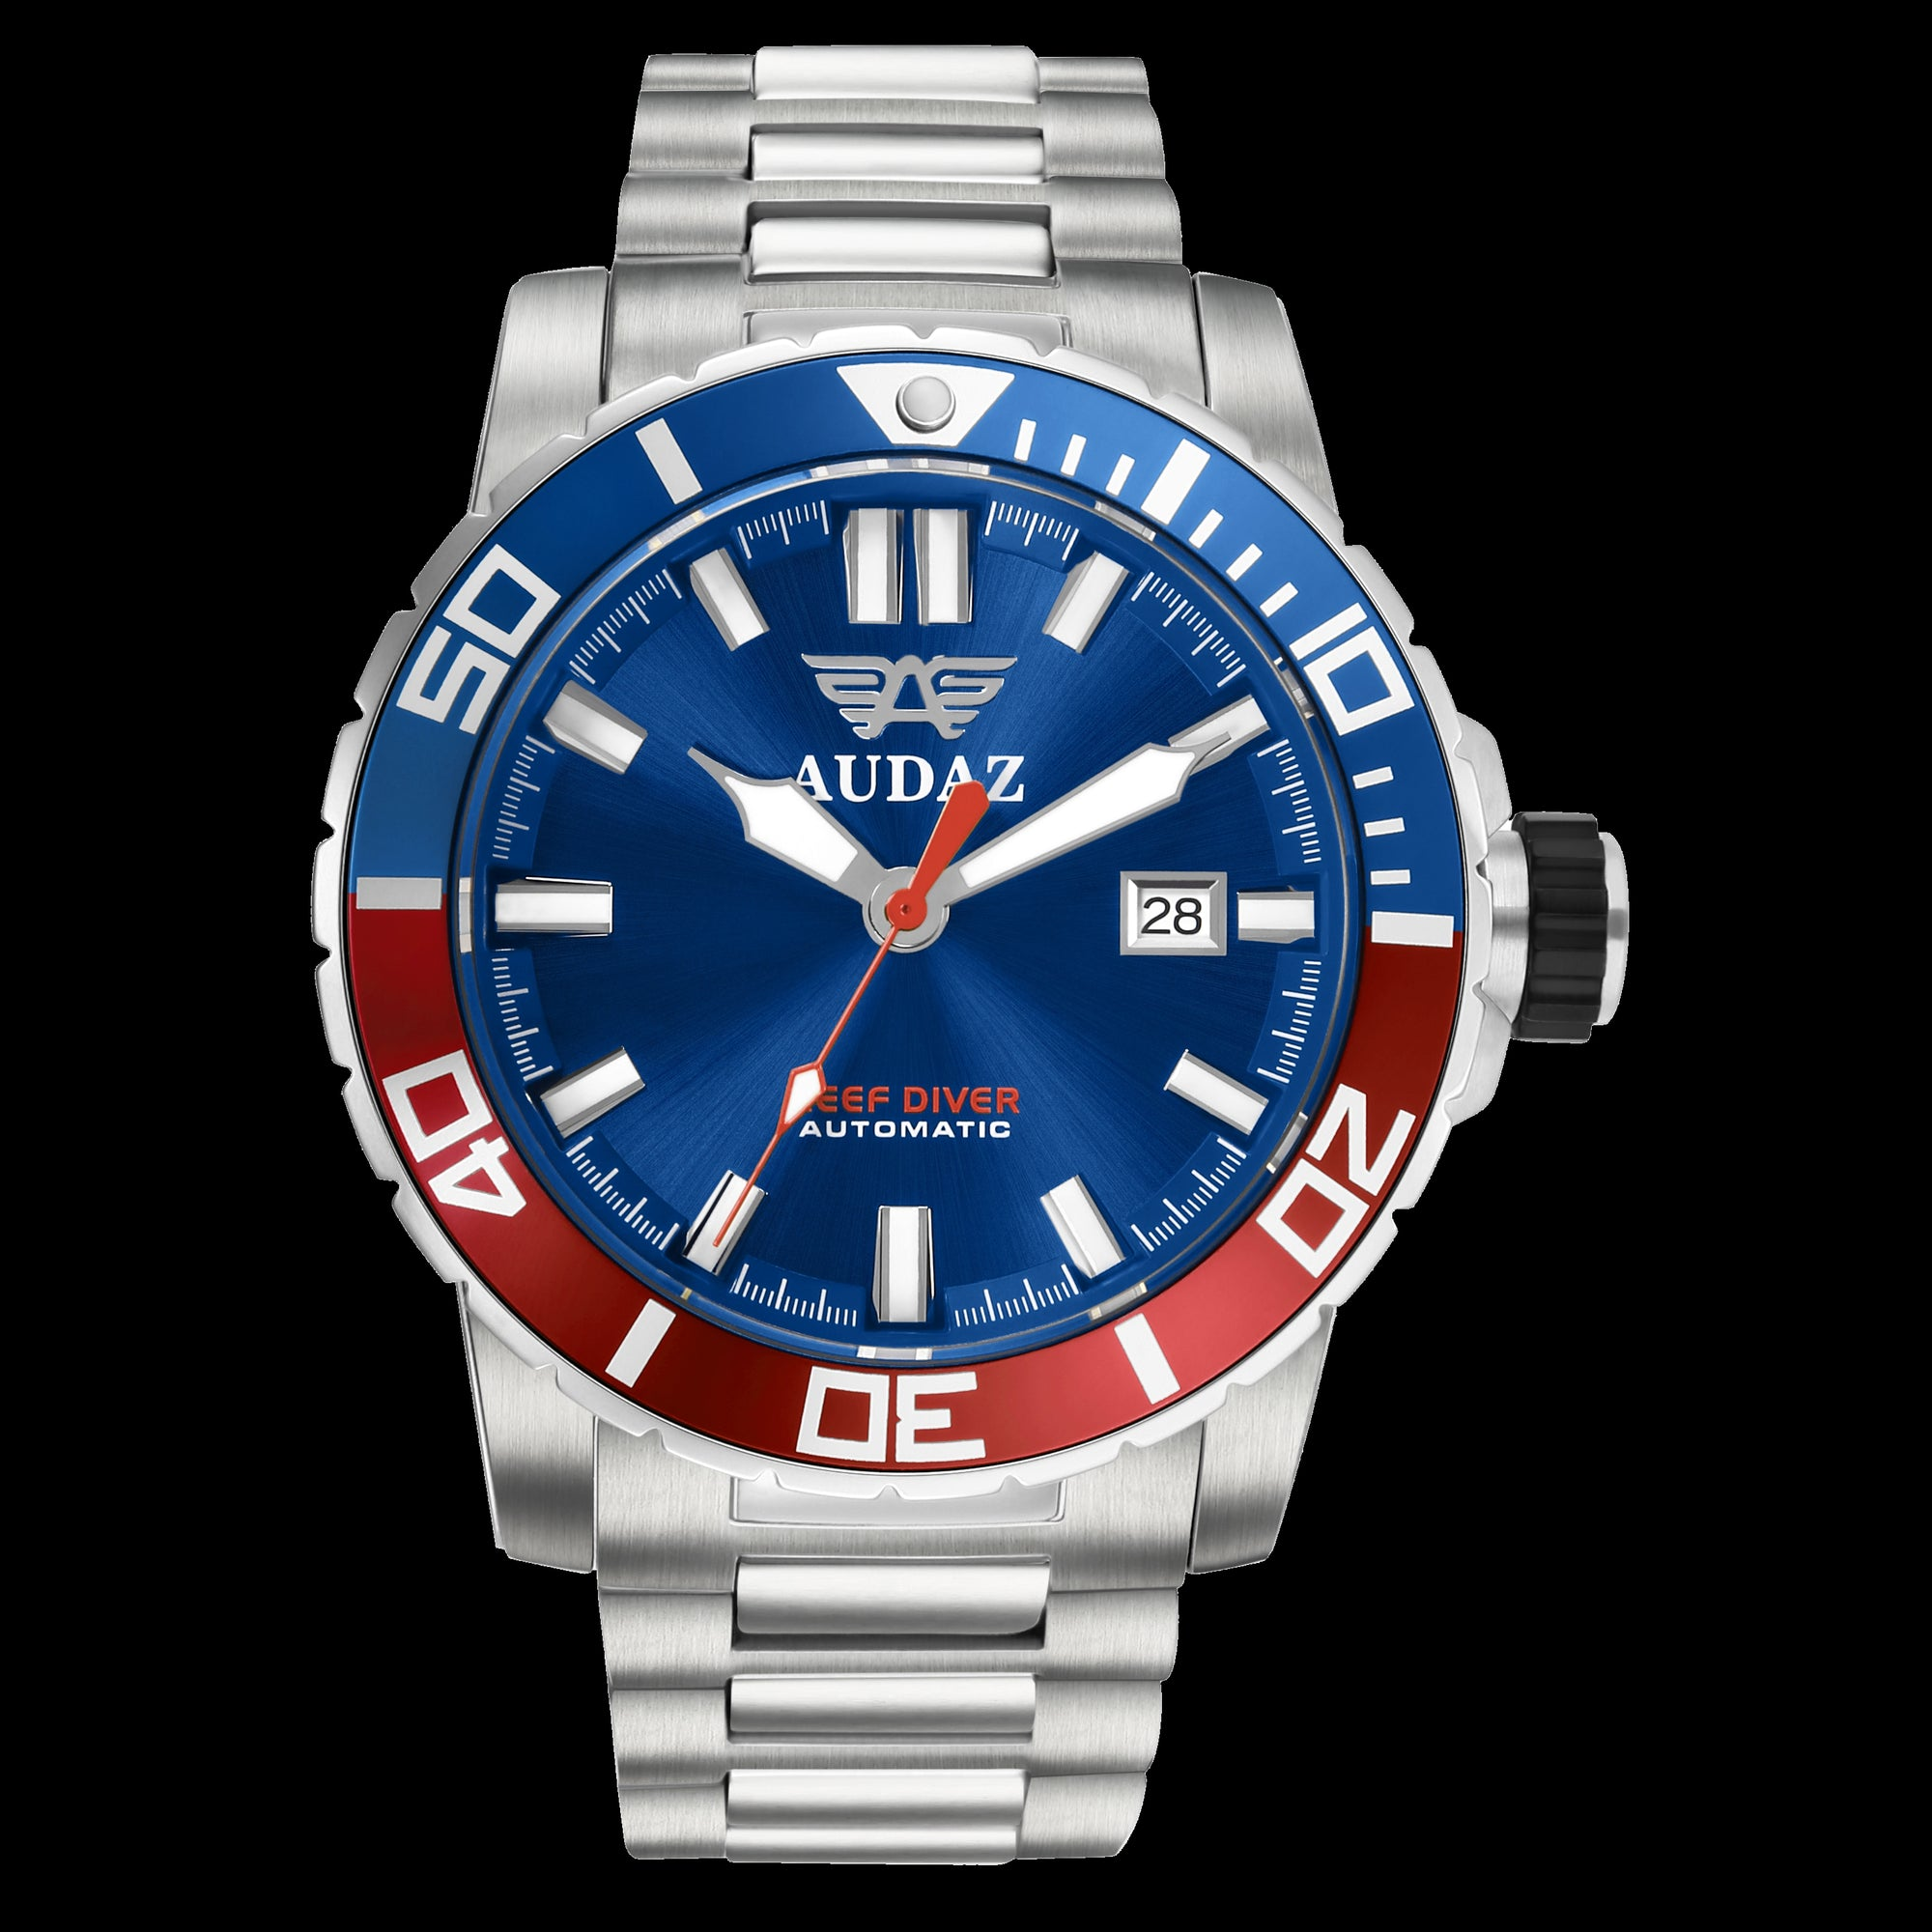 Reef Diver Watches ADZ-2040-04